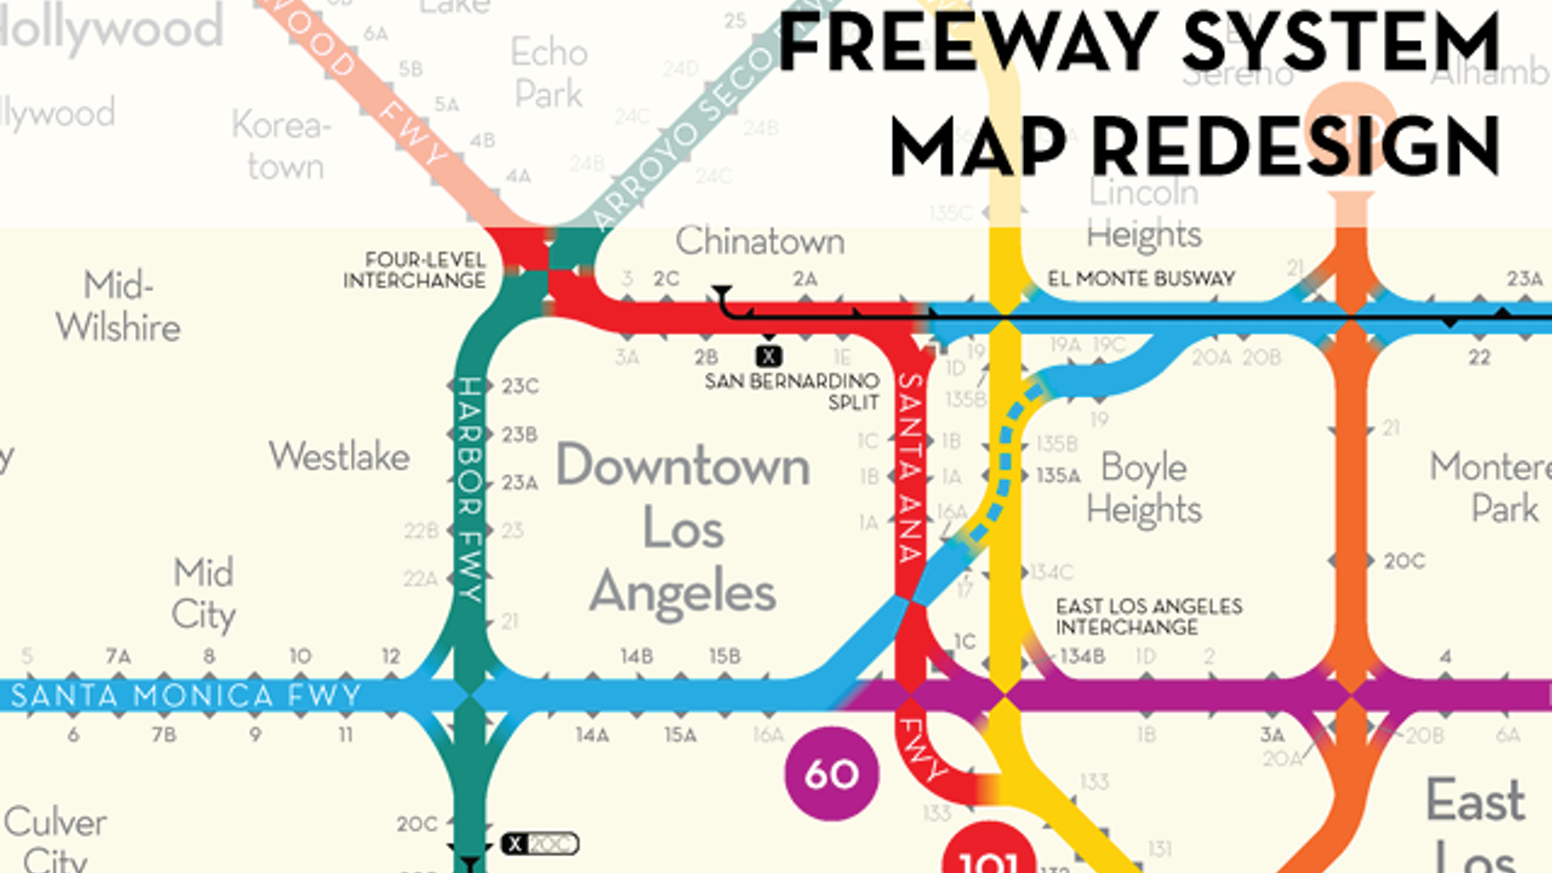 Los Angeles Freeway Map Redesigned By Peter Dunn Kickstarter